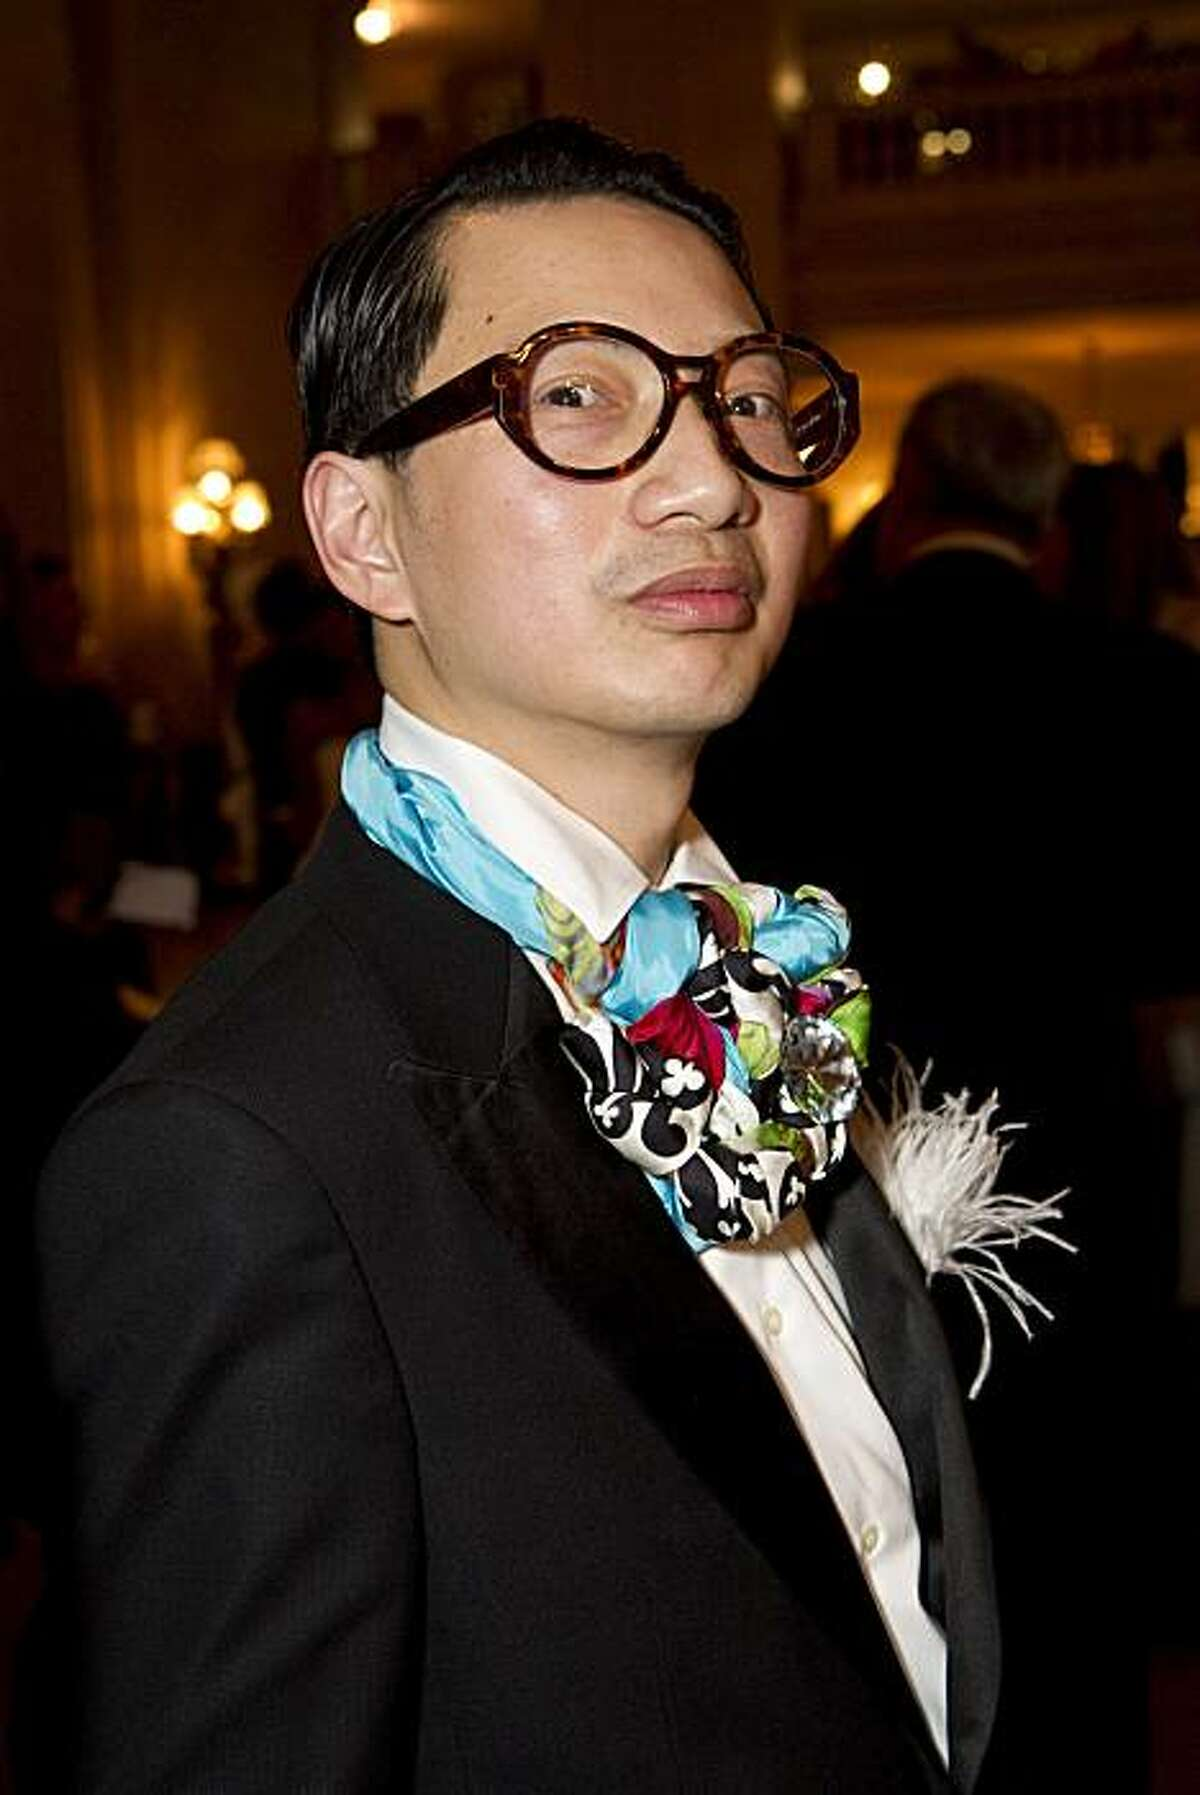 Lorence Manansala wears a colorful tie while attending the San Francisco Ballet 2011 Opening Night Gala at City Hall in San Francisco, Calif., on Wednesday, January 26, 2011.